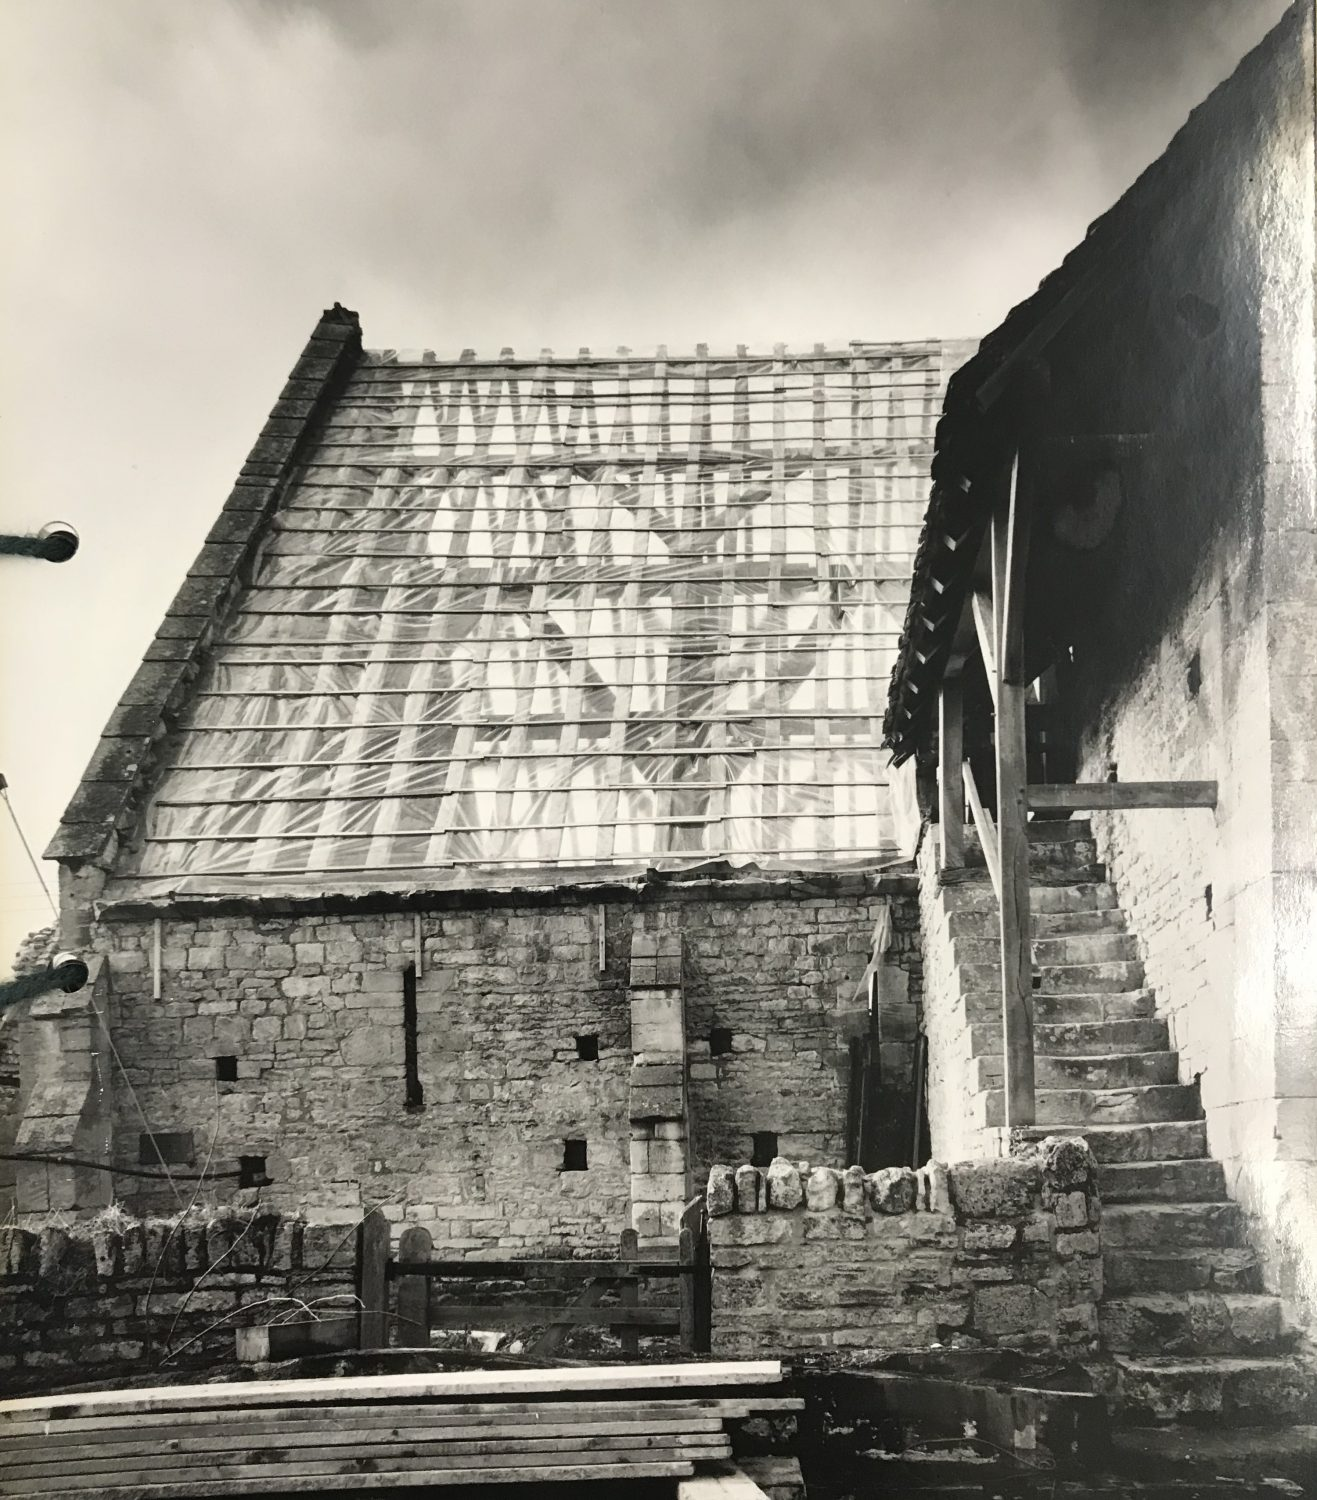 View of Bredon Barn roof from the outside, temporarily covered while undergoing reconstruction